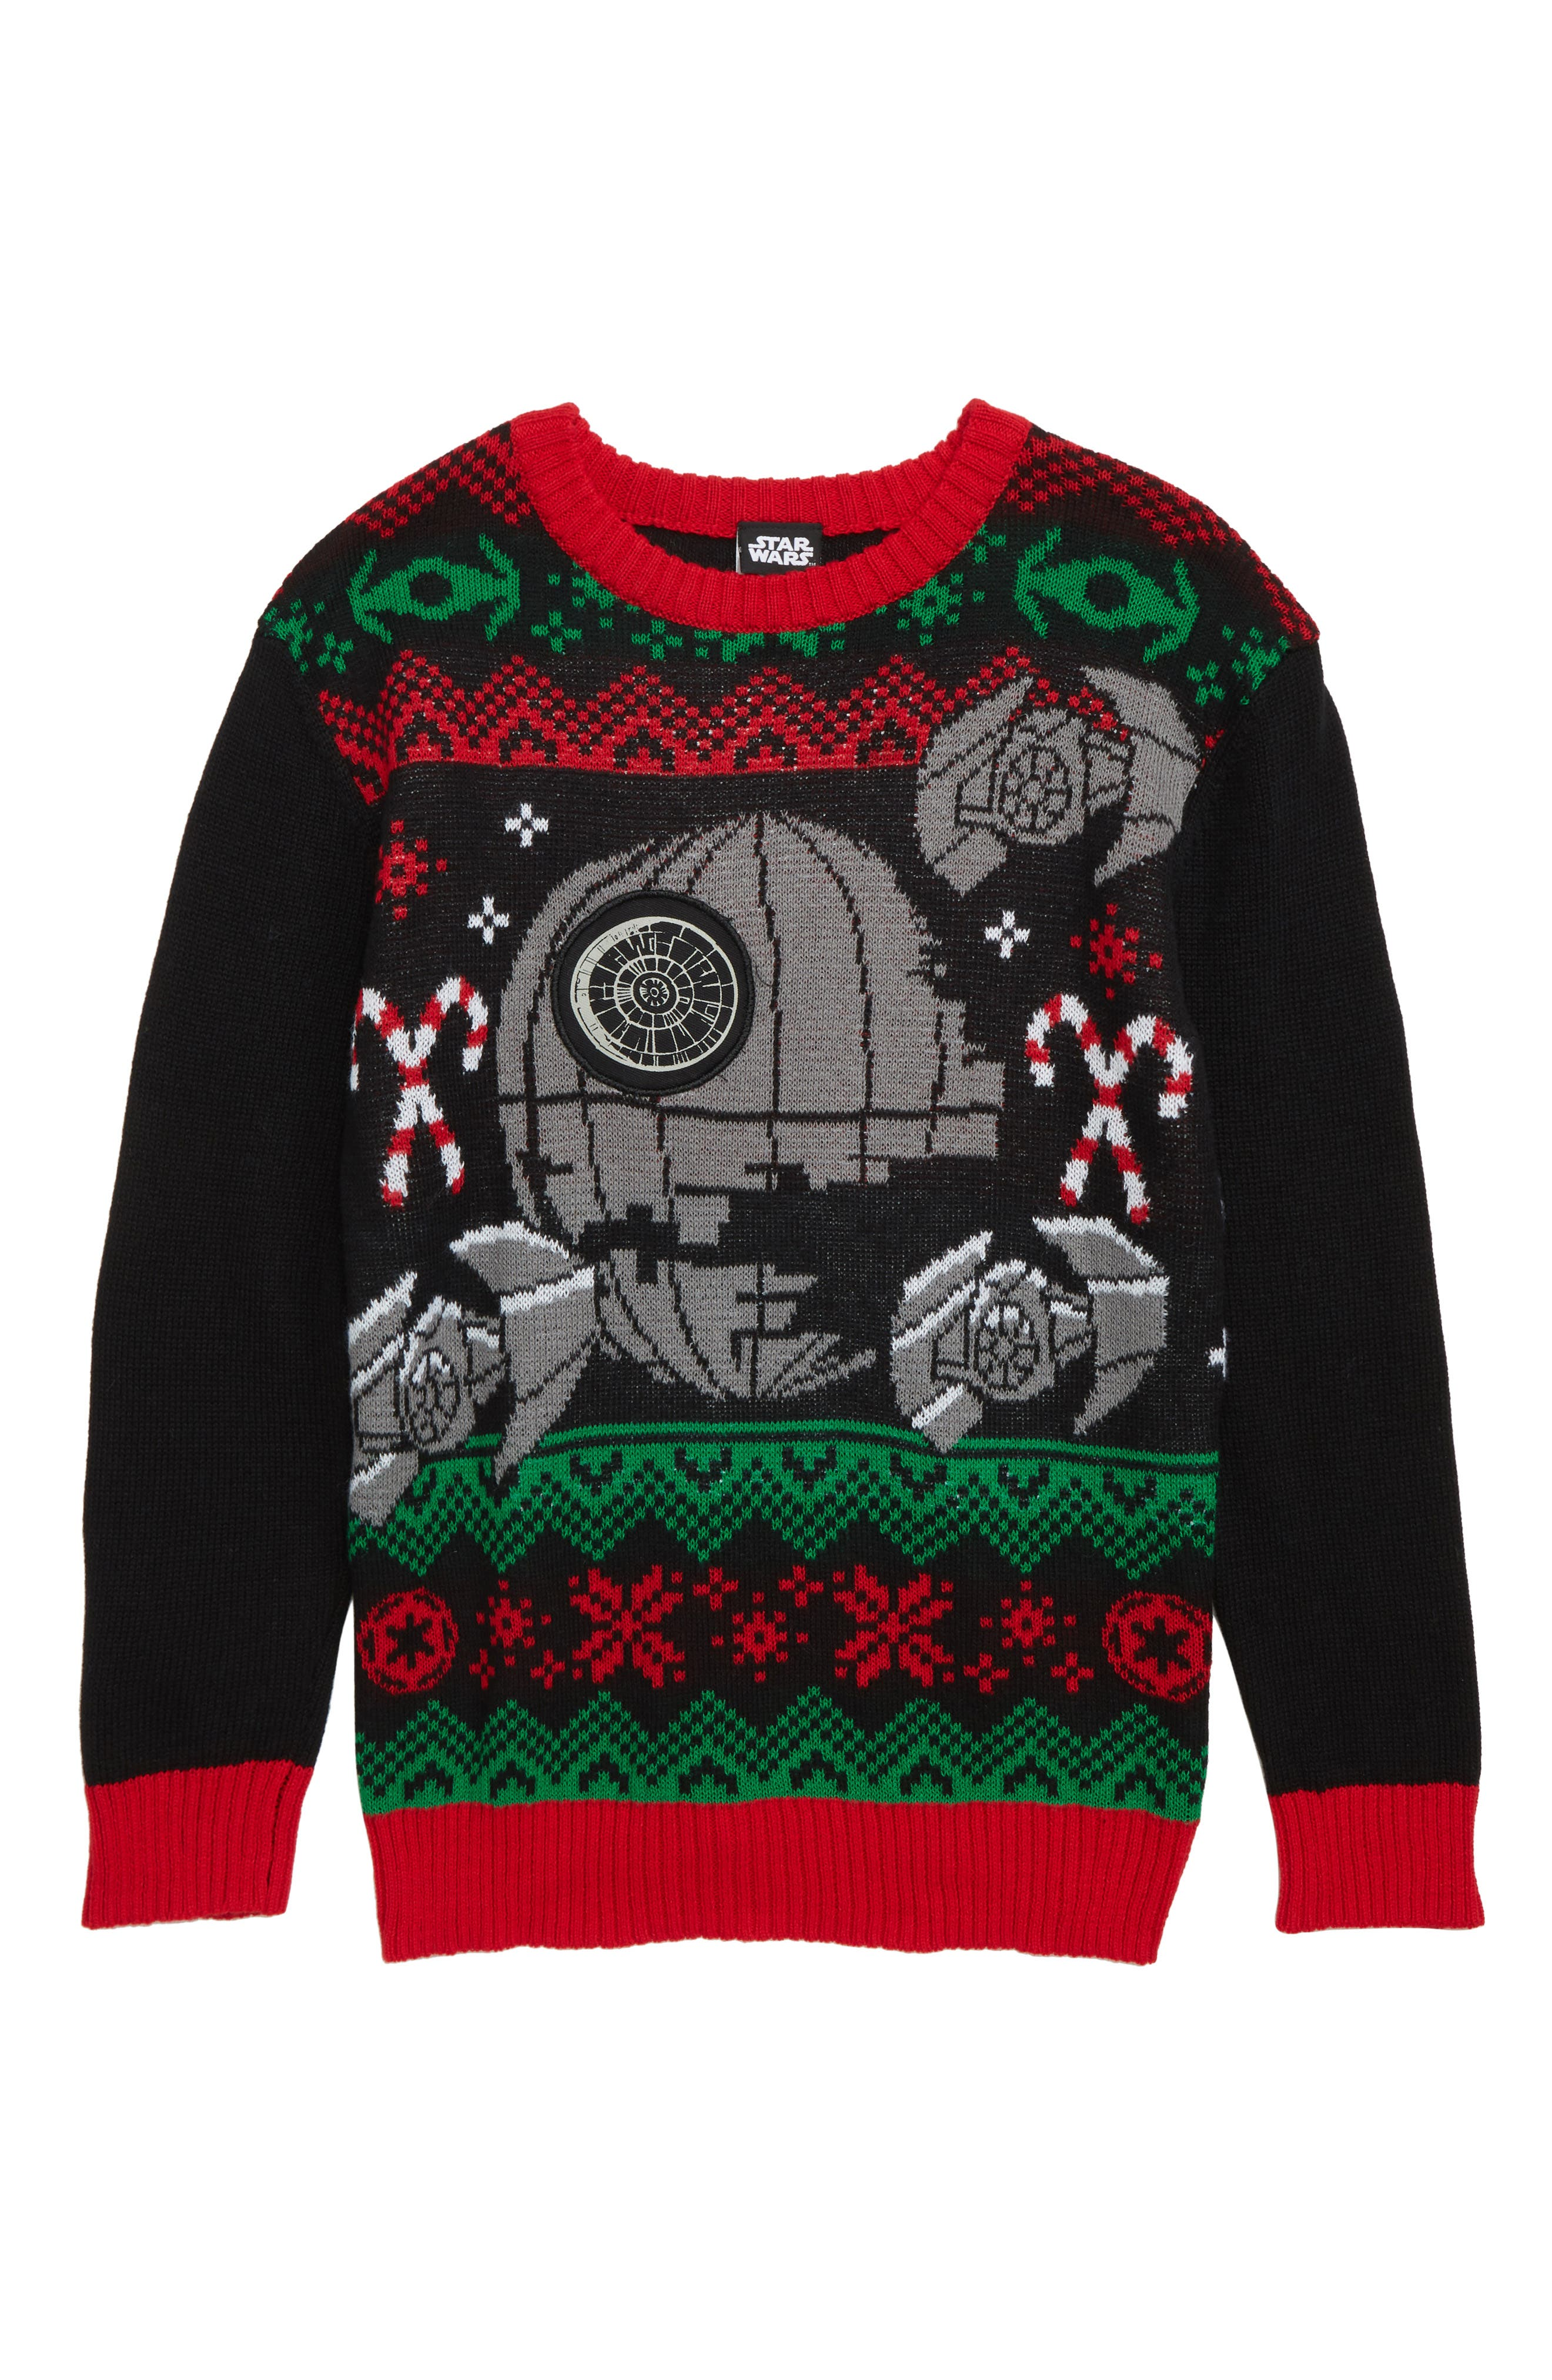 x Star Wars<sup>™</sup> Death Star Musical Holiday Sweater,                         Main,                         color, BLACK